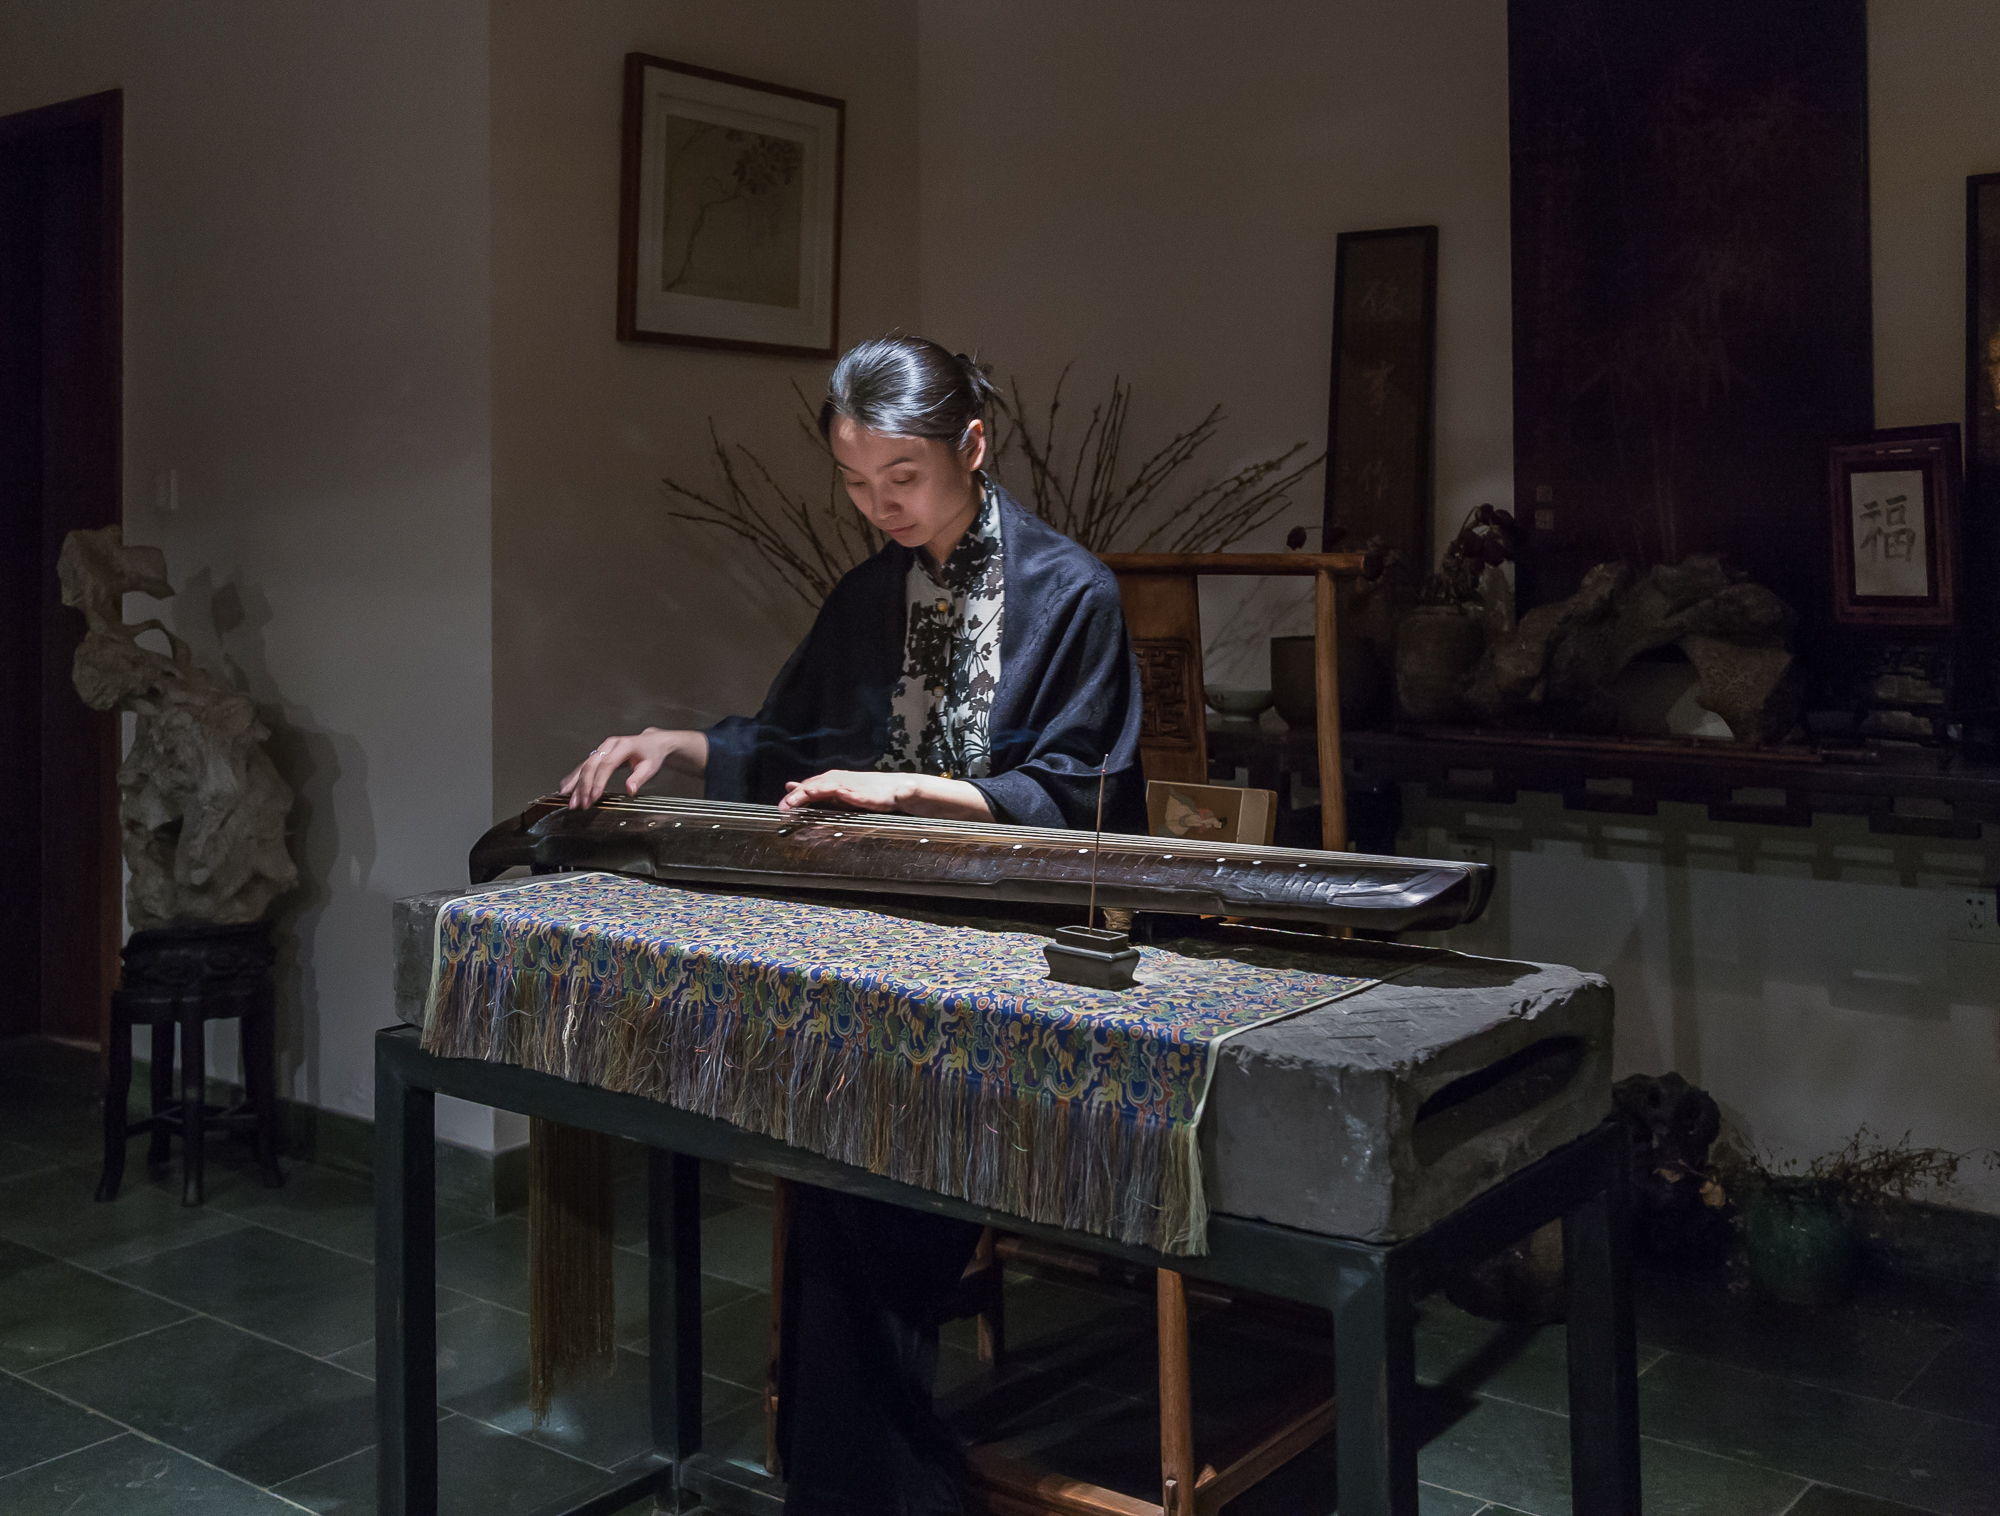 Musician with an ancient instrument, Suzhou, China